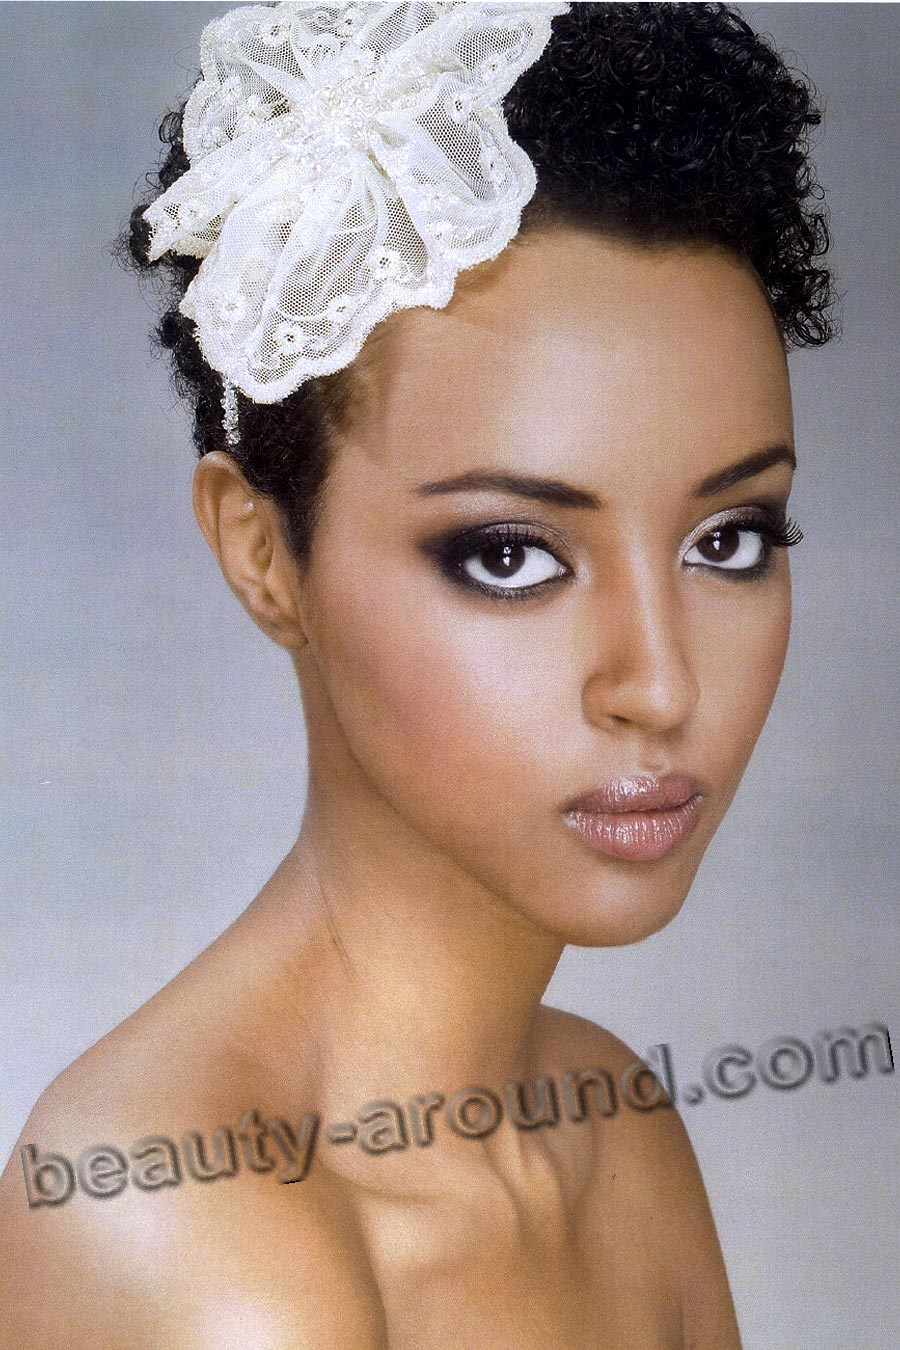 Can Somali girls beautiful sexy there's